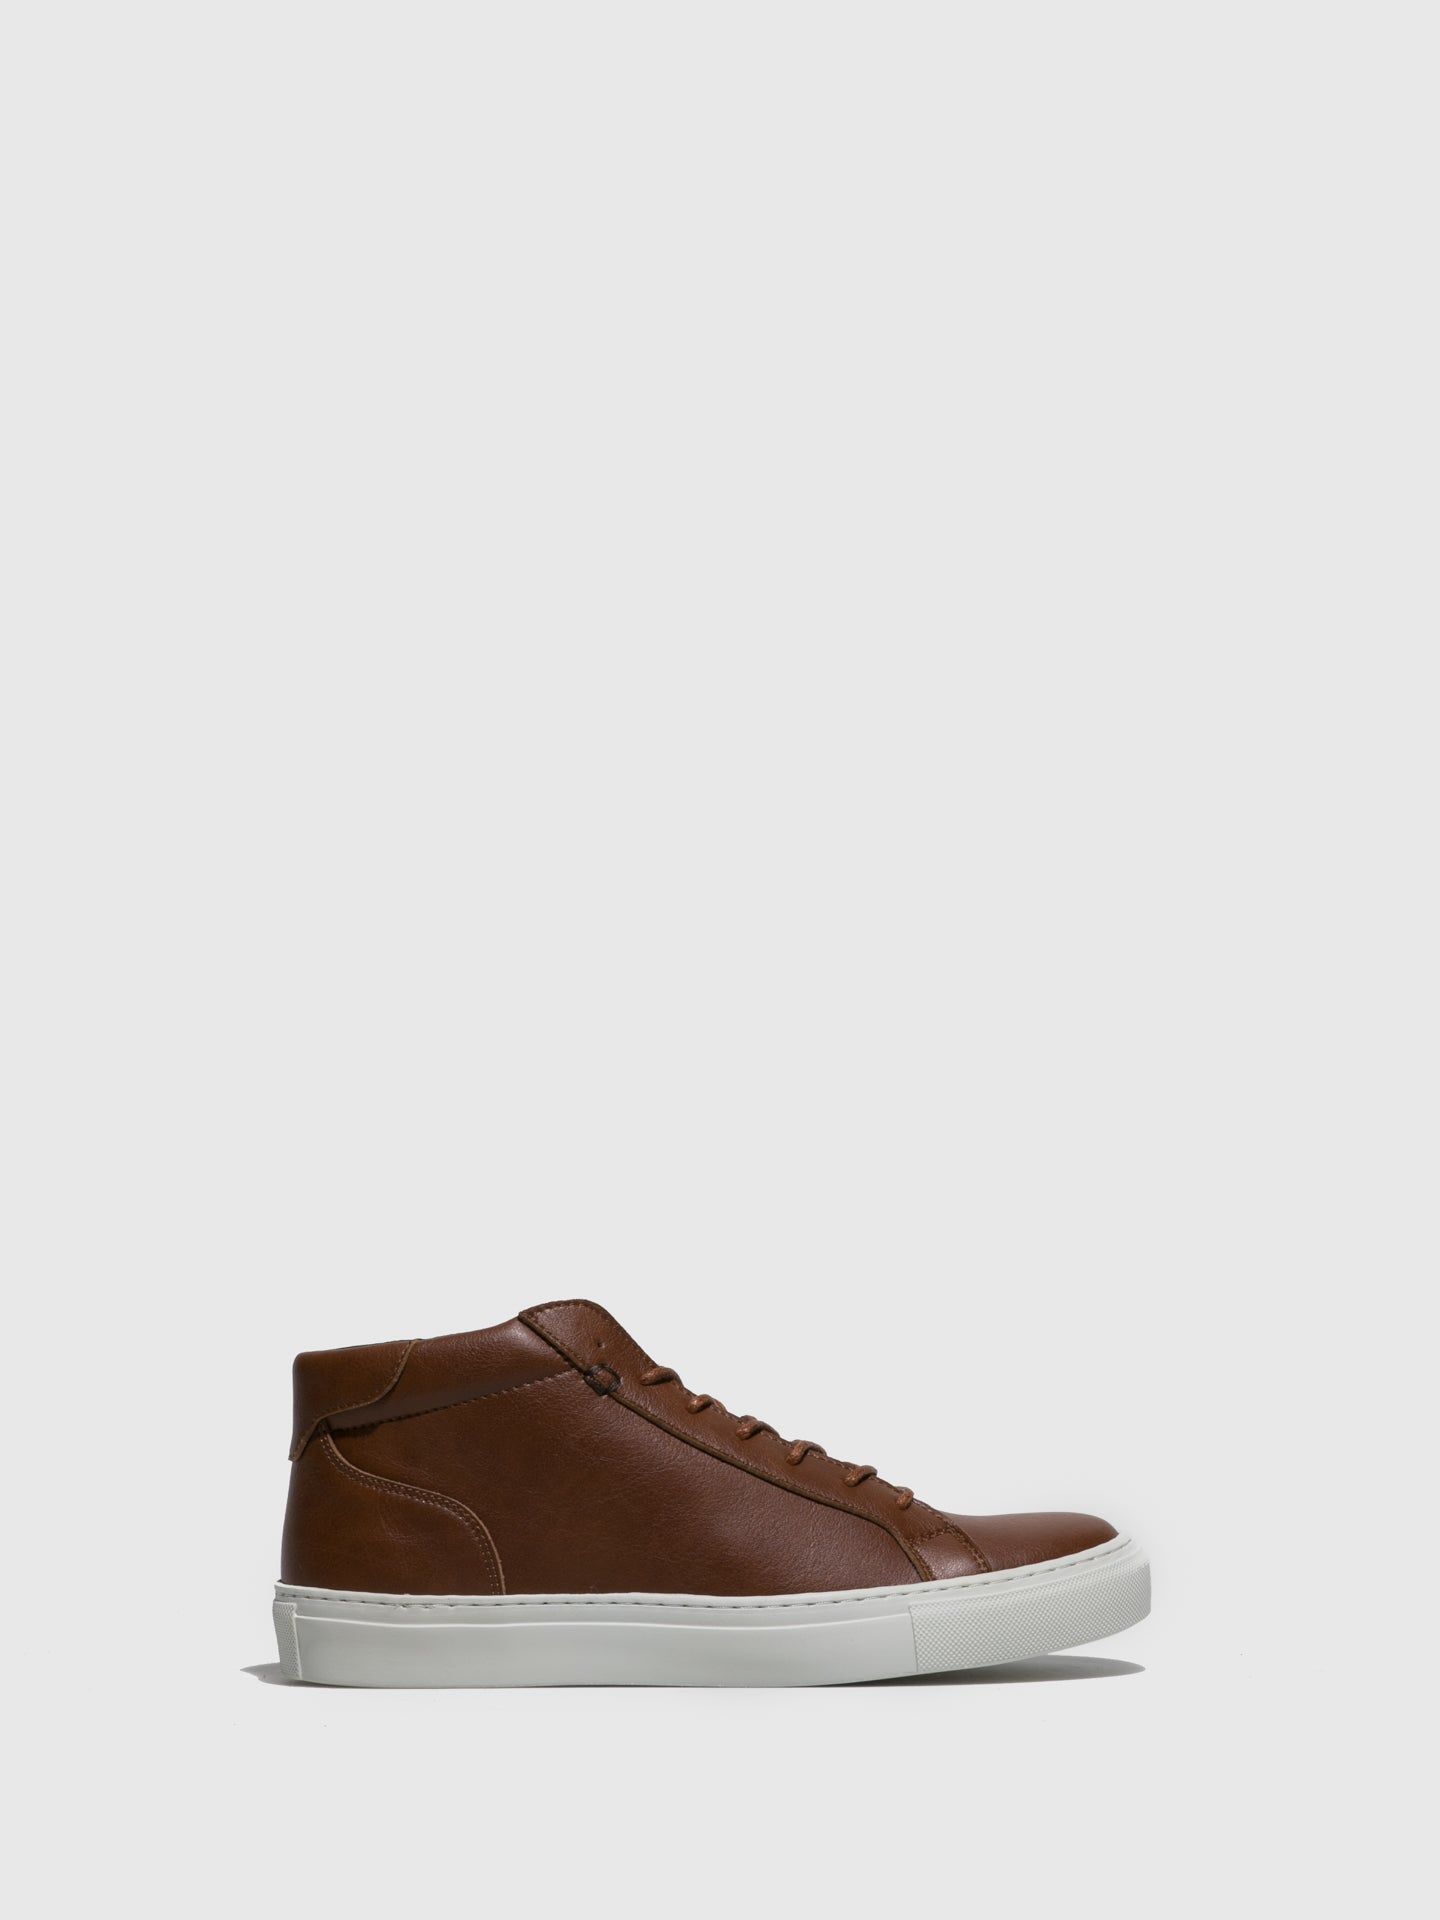 NAE Vegan Shoes Brown Lace-up Trainers